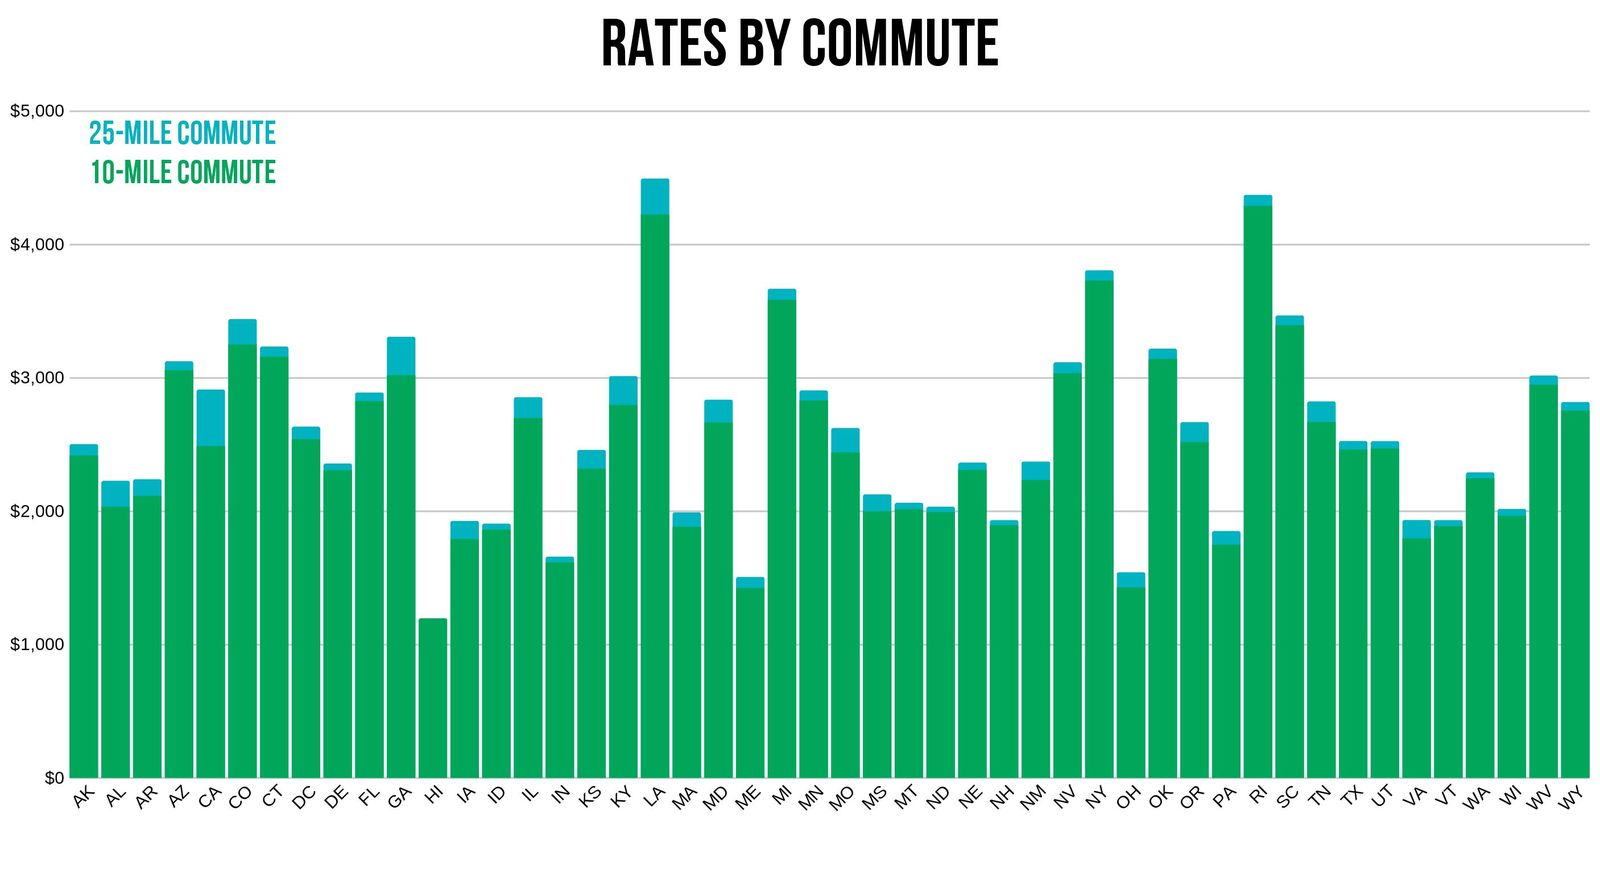 USAA rates depending on commute distance